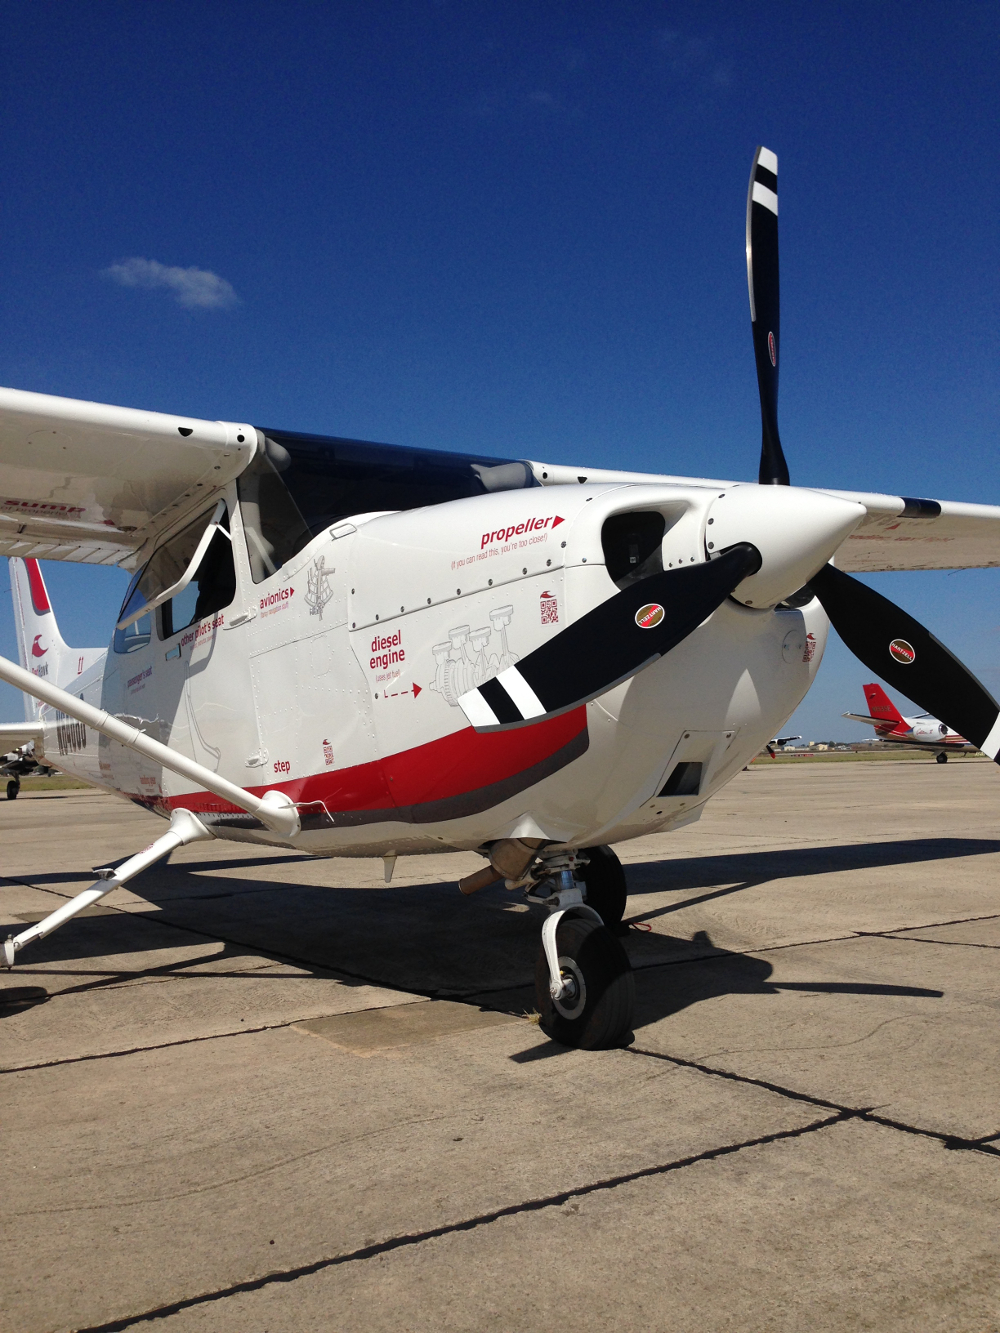 RedHawk Training Aircraft Becomes Even More Compelling With TBR Increase